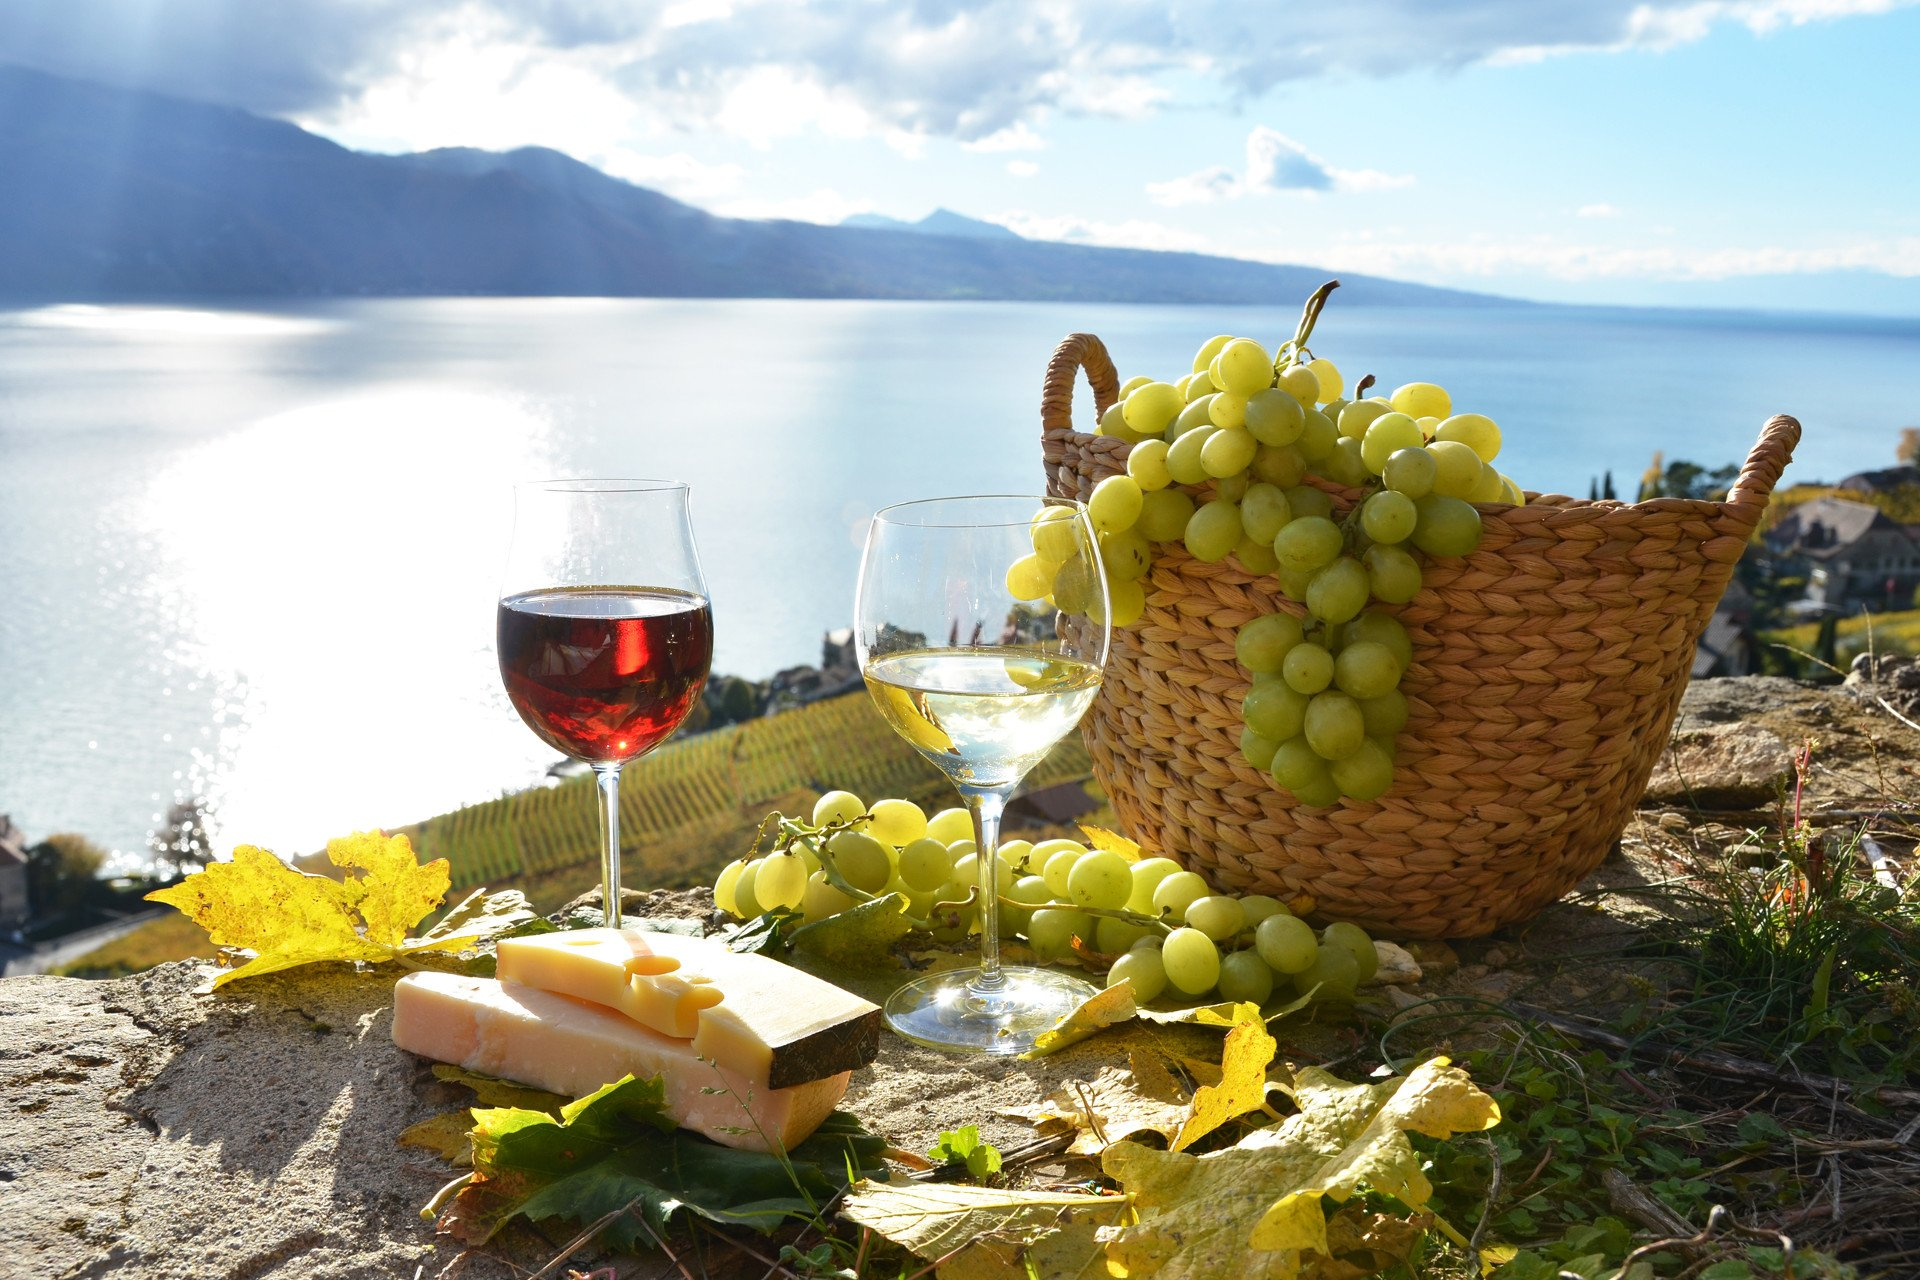 wine glasses-wine tasting-private tour-Lavaux-Switzerland-Geneva Lake